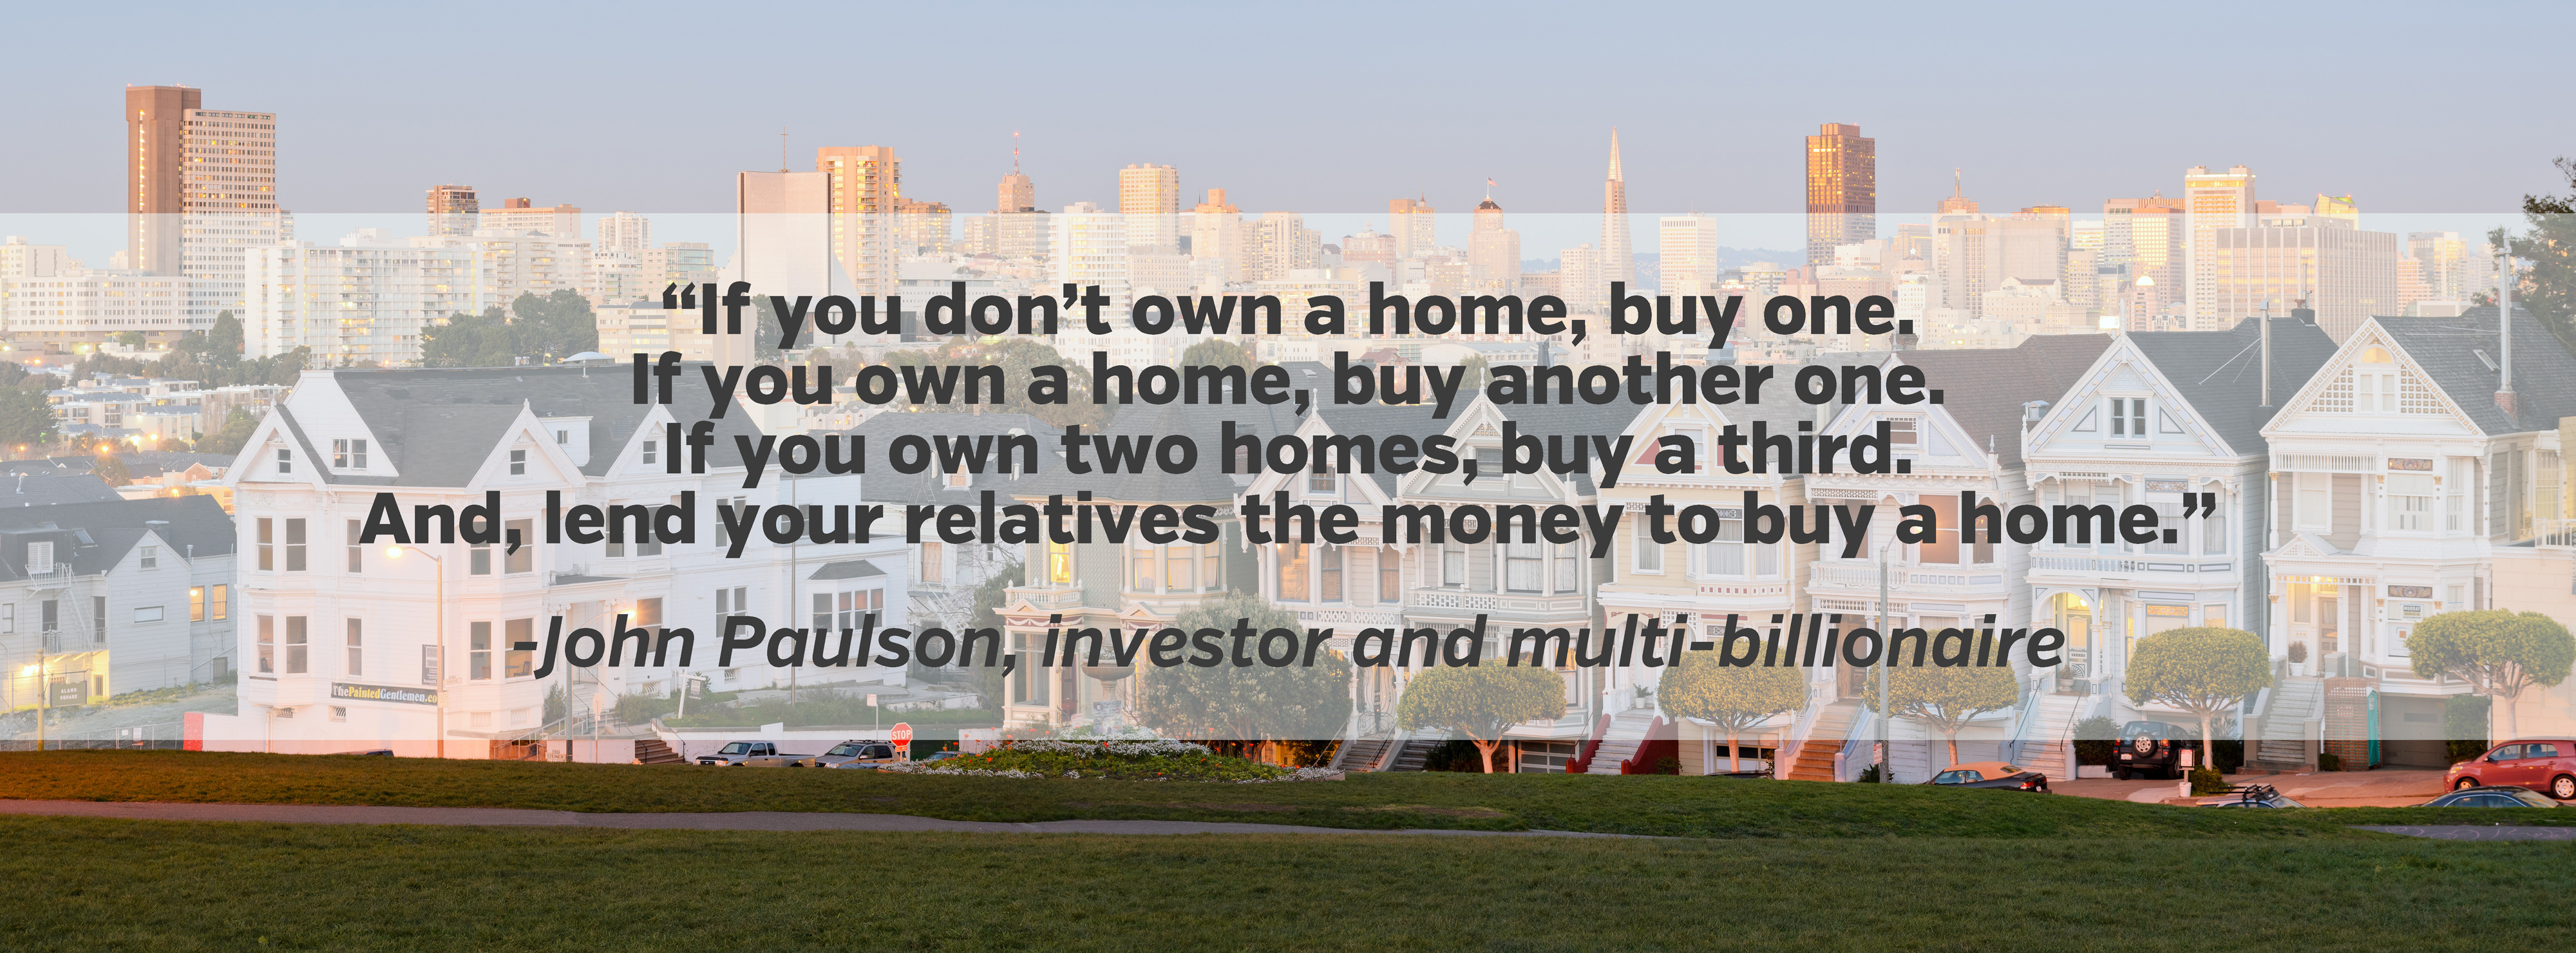 Buying Real Estate Quotes Inspiration Quotesgram